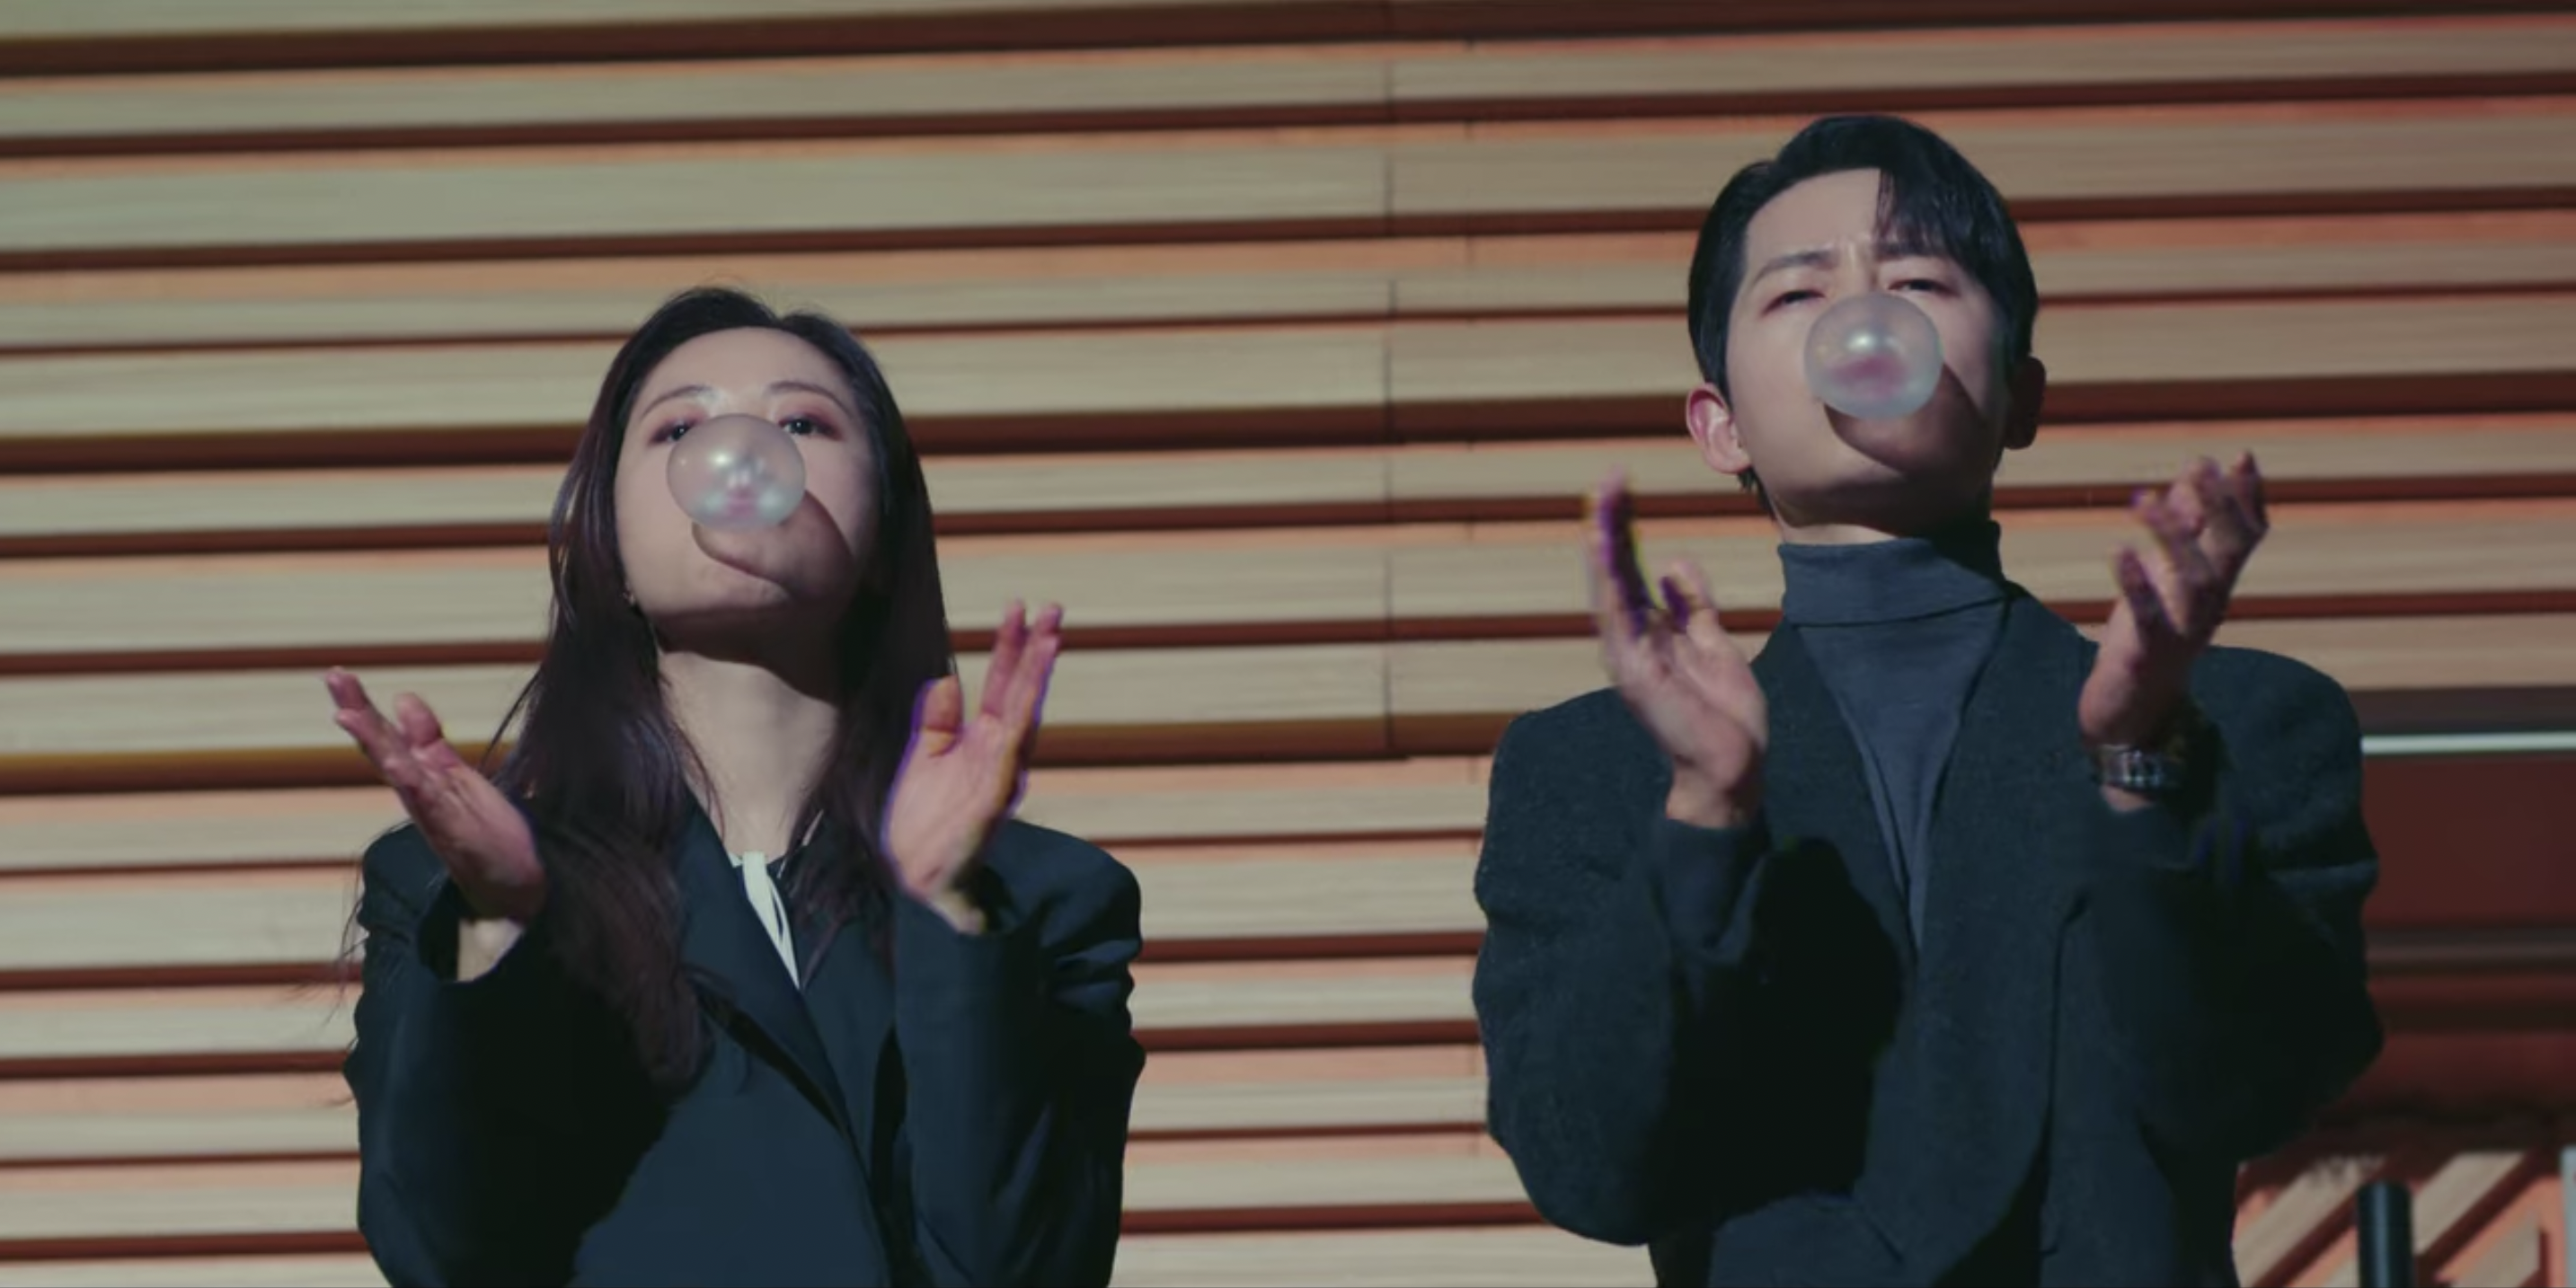 Cha-young and Vincenzo applaud and blow bubbles with bubblegum after embarrassing Han-seok